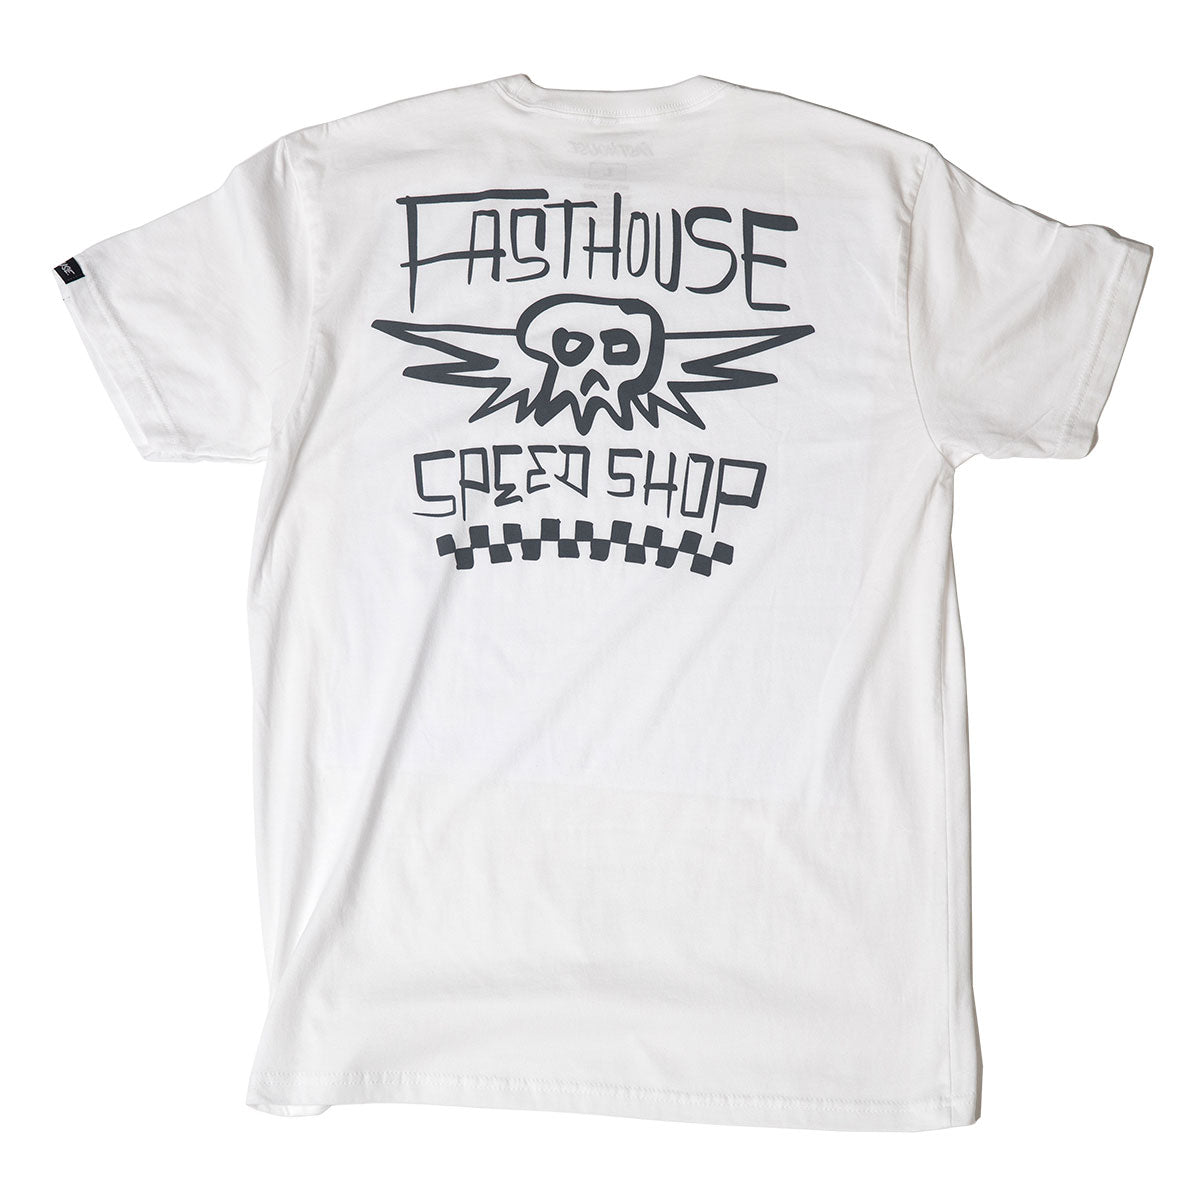 Fasthouse - Midway Tee - White